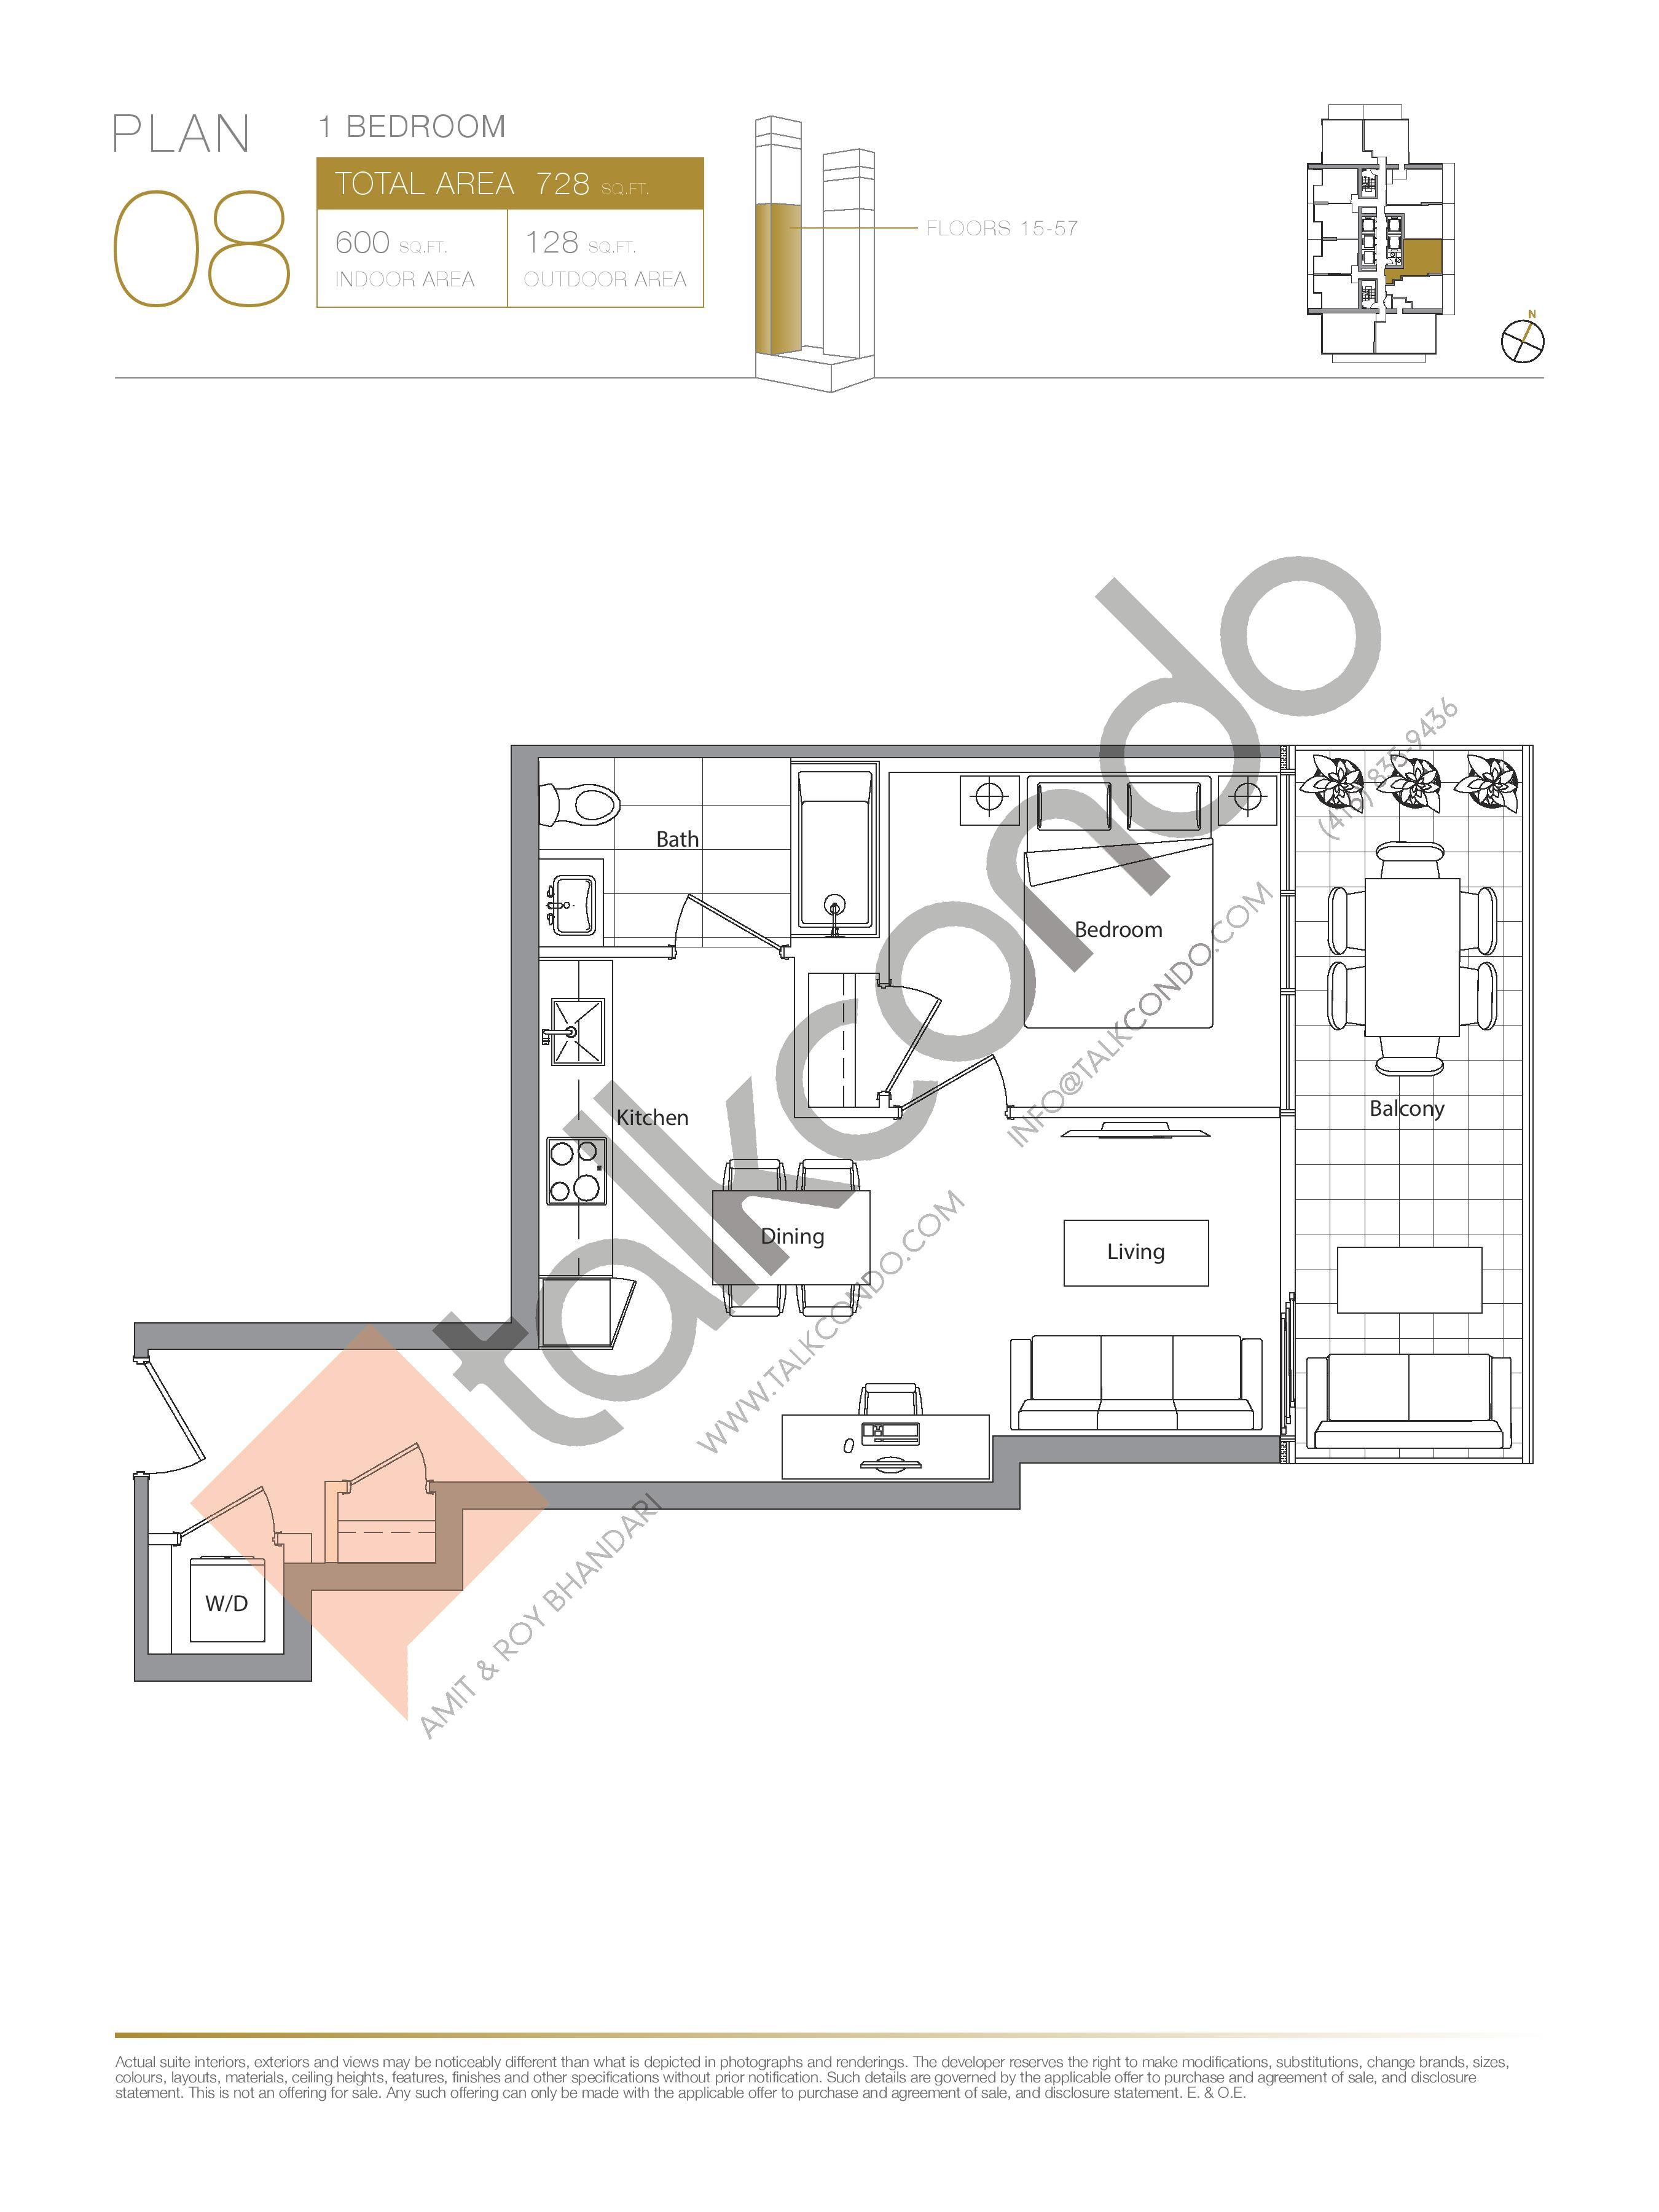 Plan 08 (New Release) Lower Floor Plan at Concord Canada House Condos - 600 sq.ft